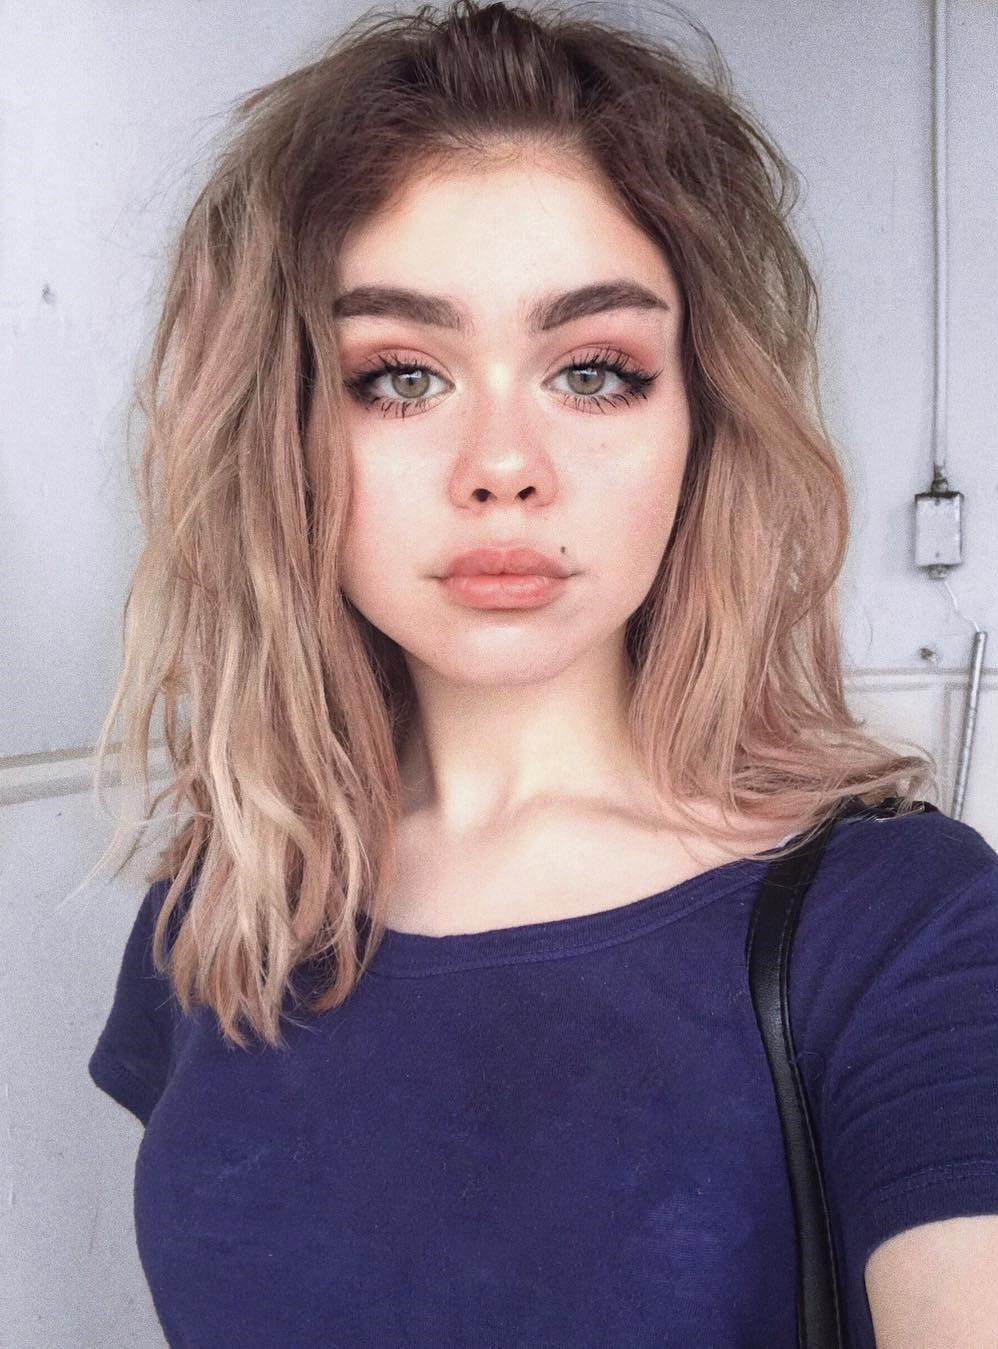 46 Amazing Makeup Looks To Try Indie Makeup Makeup Looks